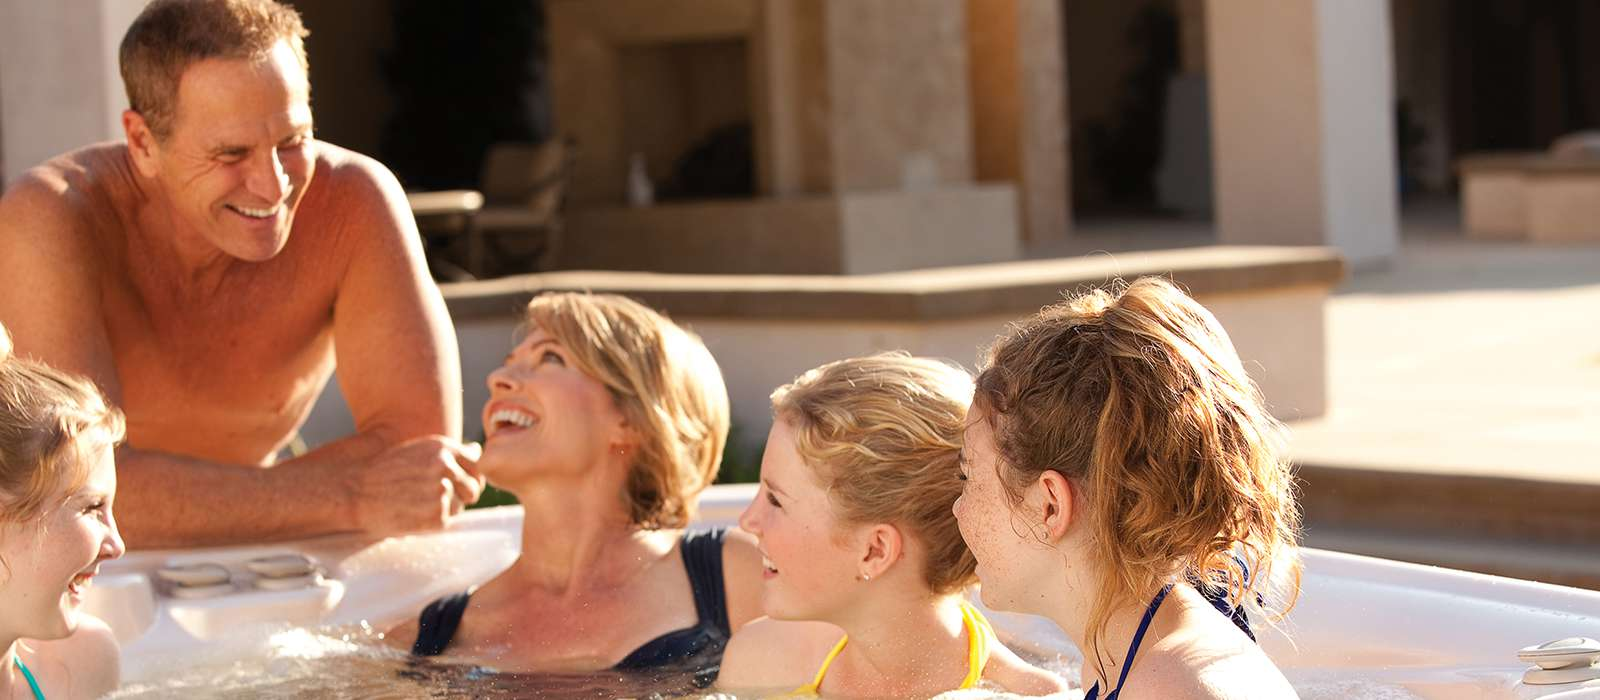 Want to get closer to your kids? Share a hot tub! - Olympic Hot Tub